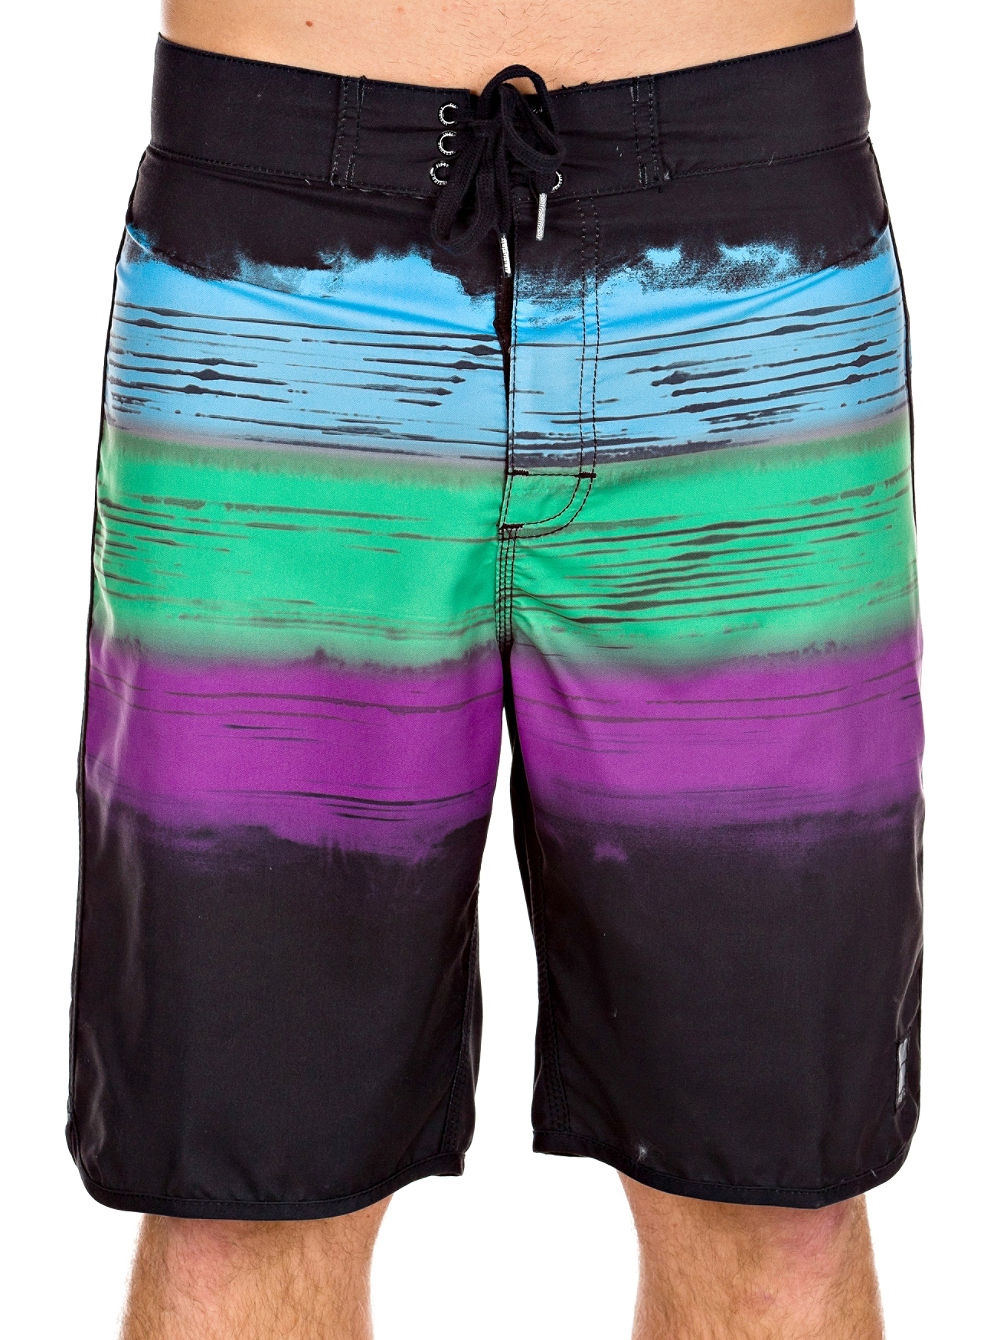 Retro Bro 2 Boardshort